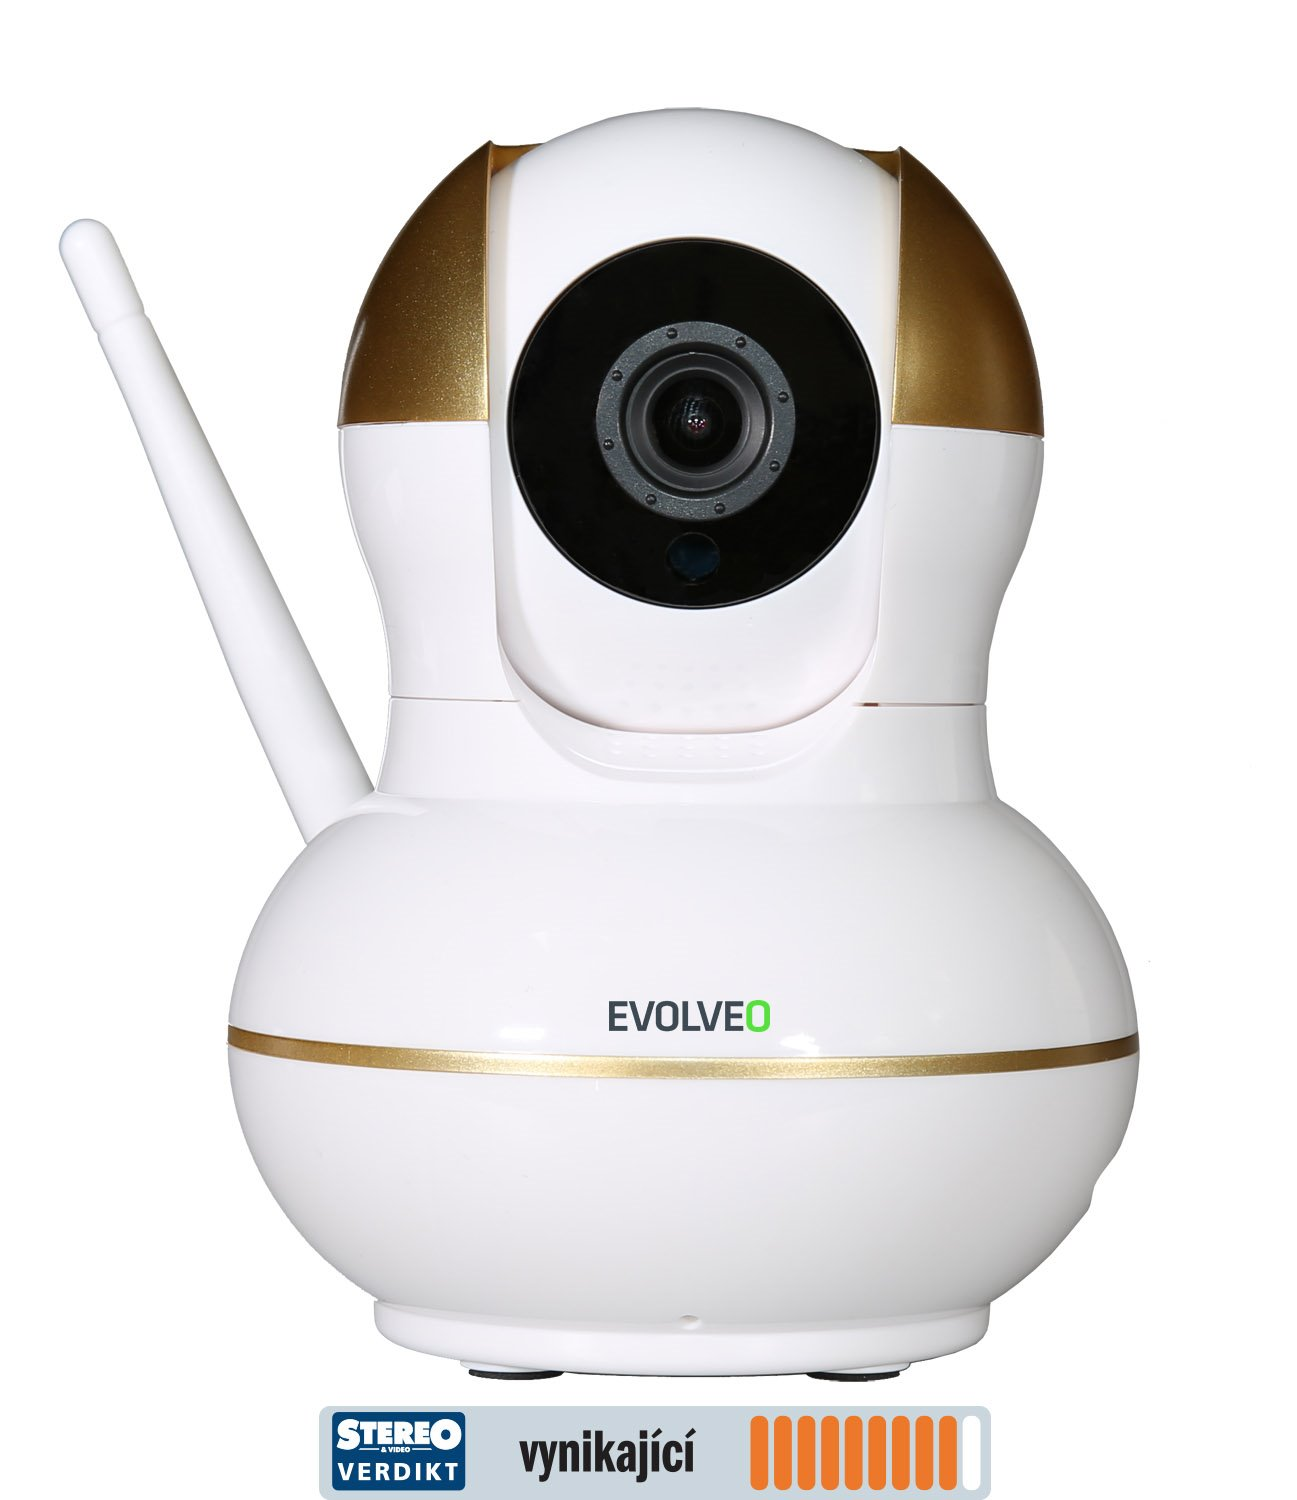 EVOLVEO Securix, wireless security system with Internet camera]